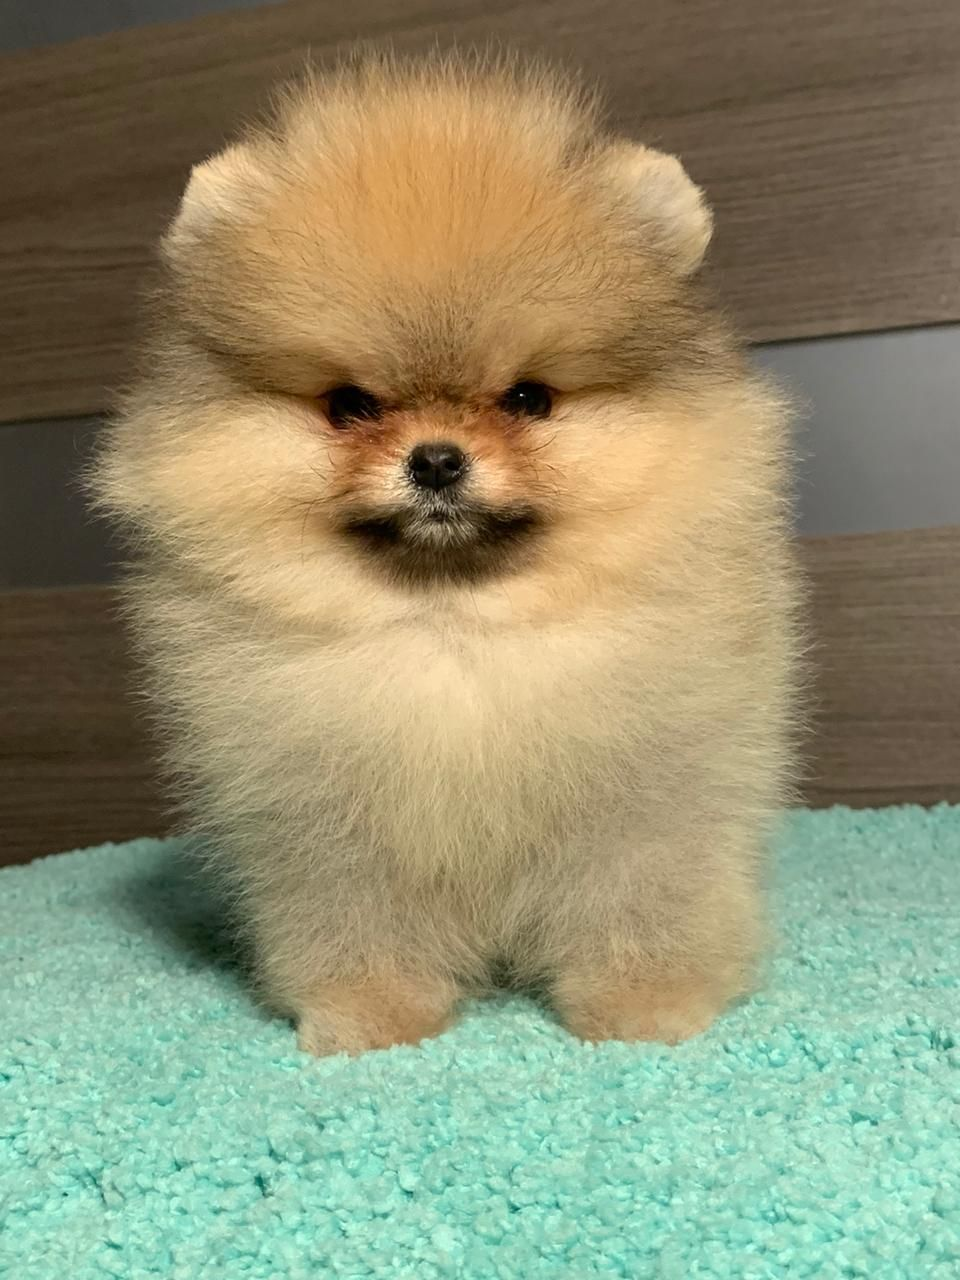 Boo Pomeranian Puppy In 2020 Pomeranian Puppy Puppies Baby Animals Super Cute